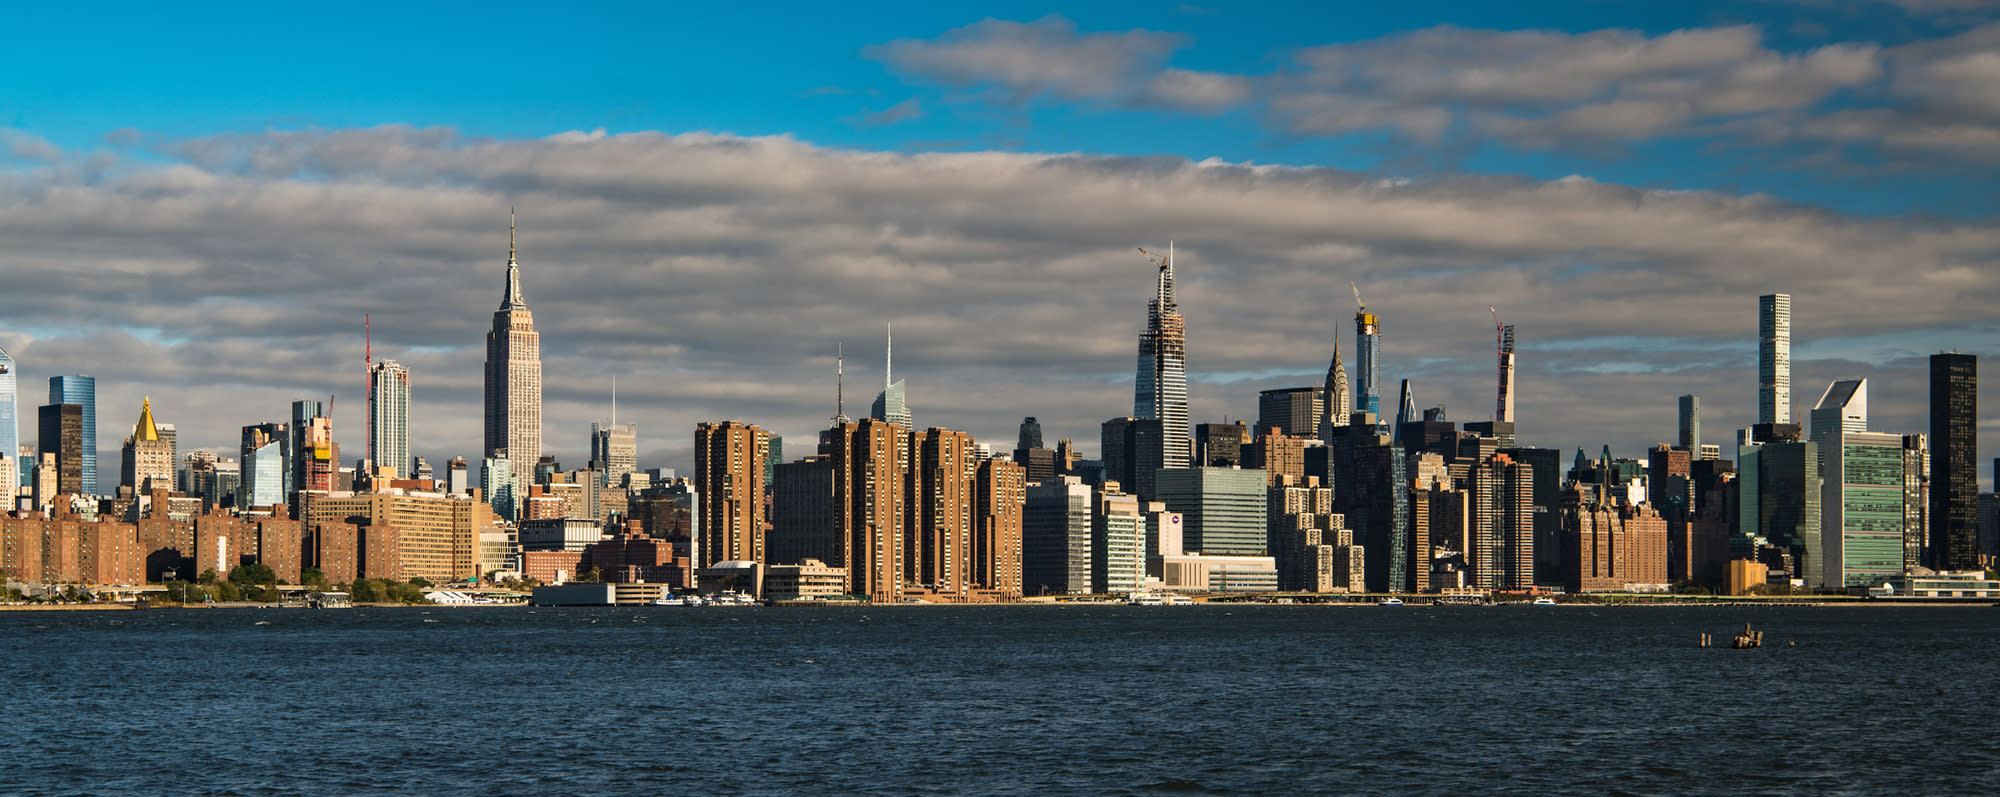 A photo of the skyline of Manhattan from East River State Park